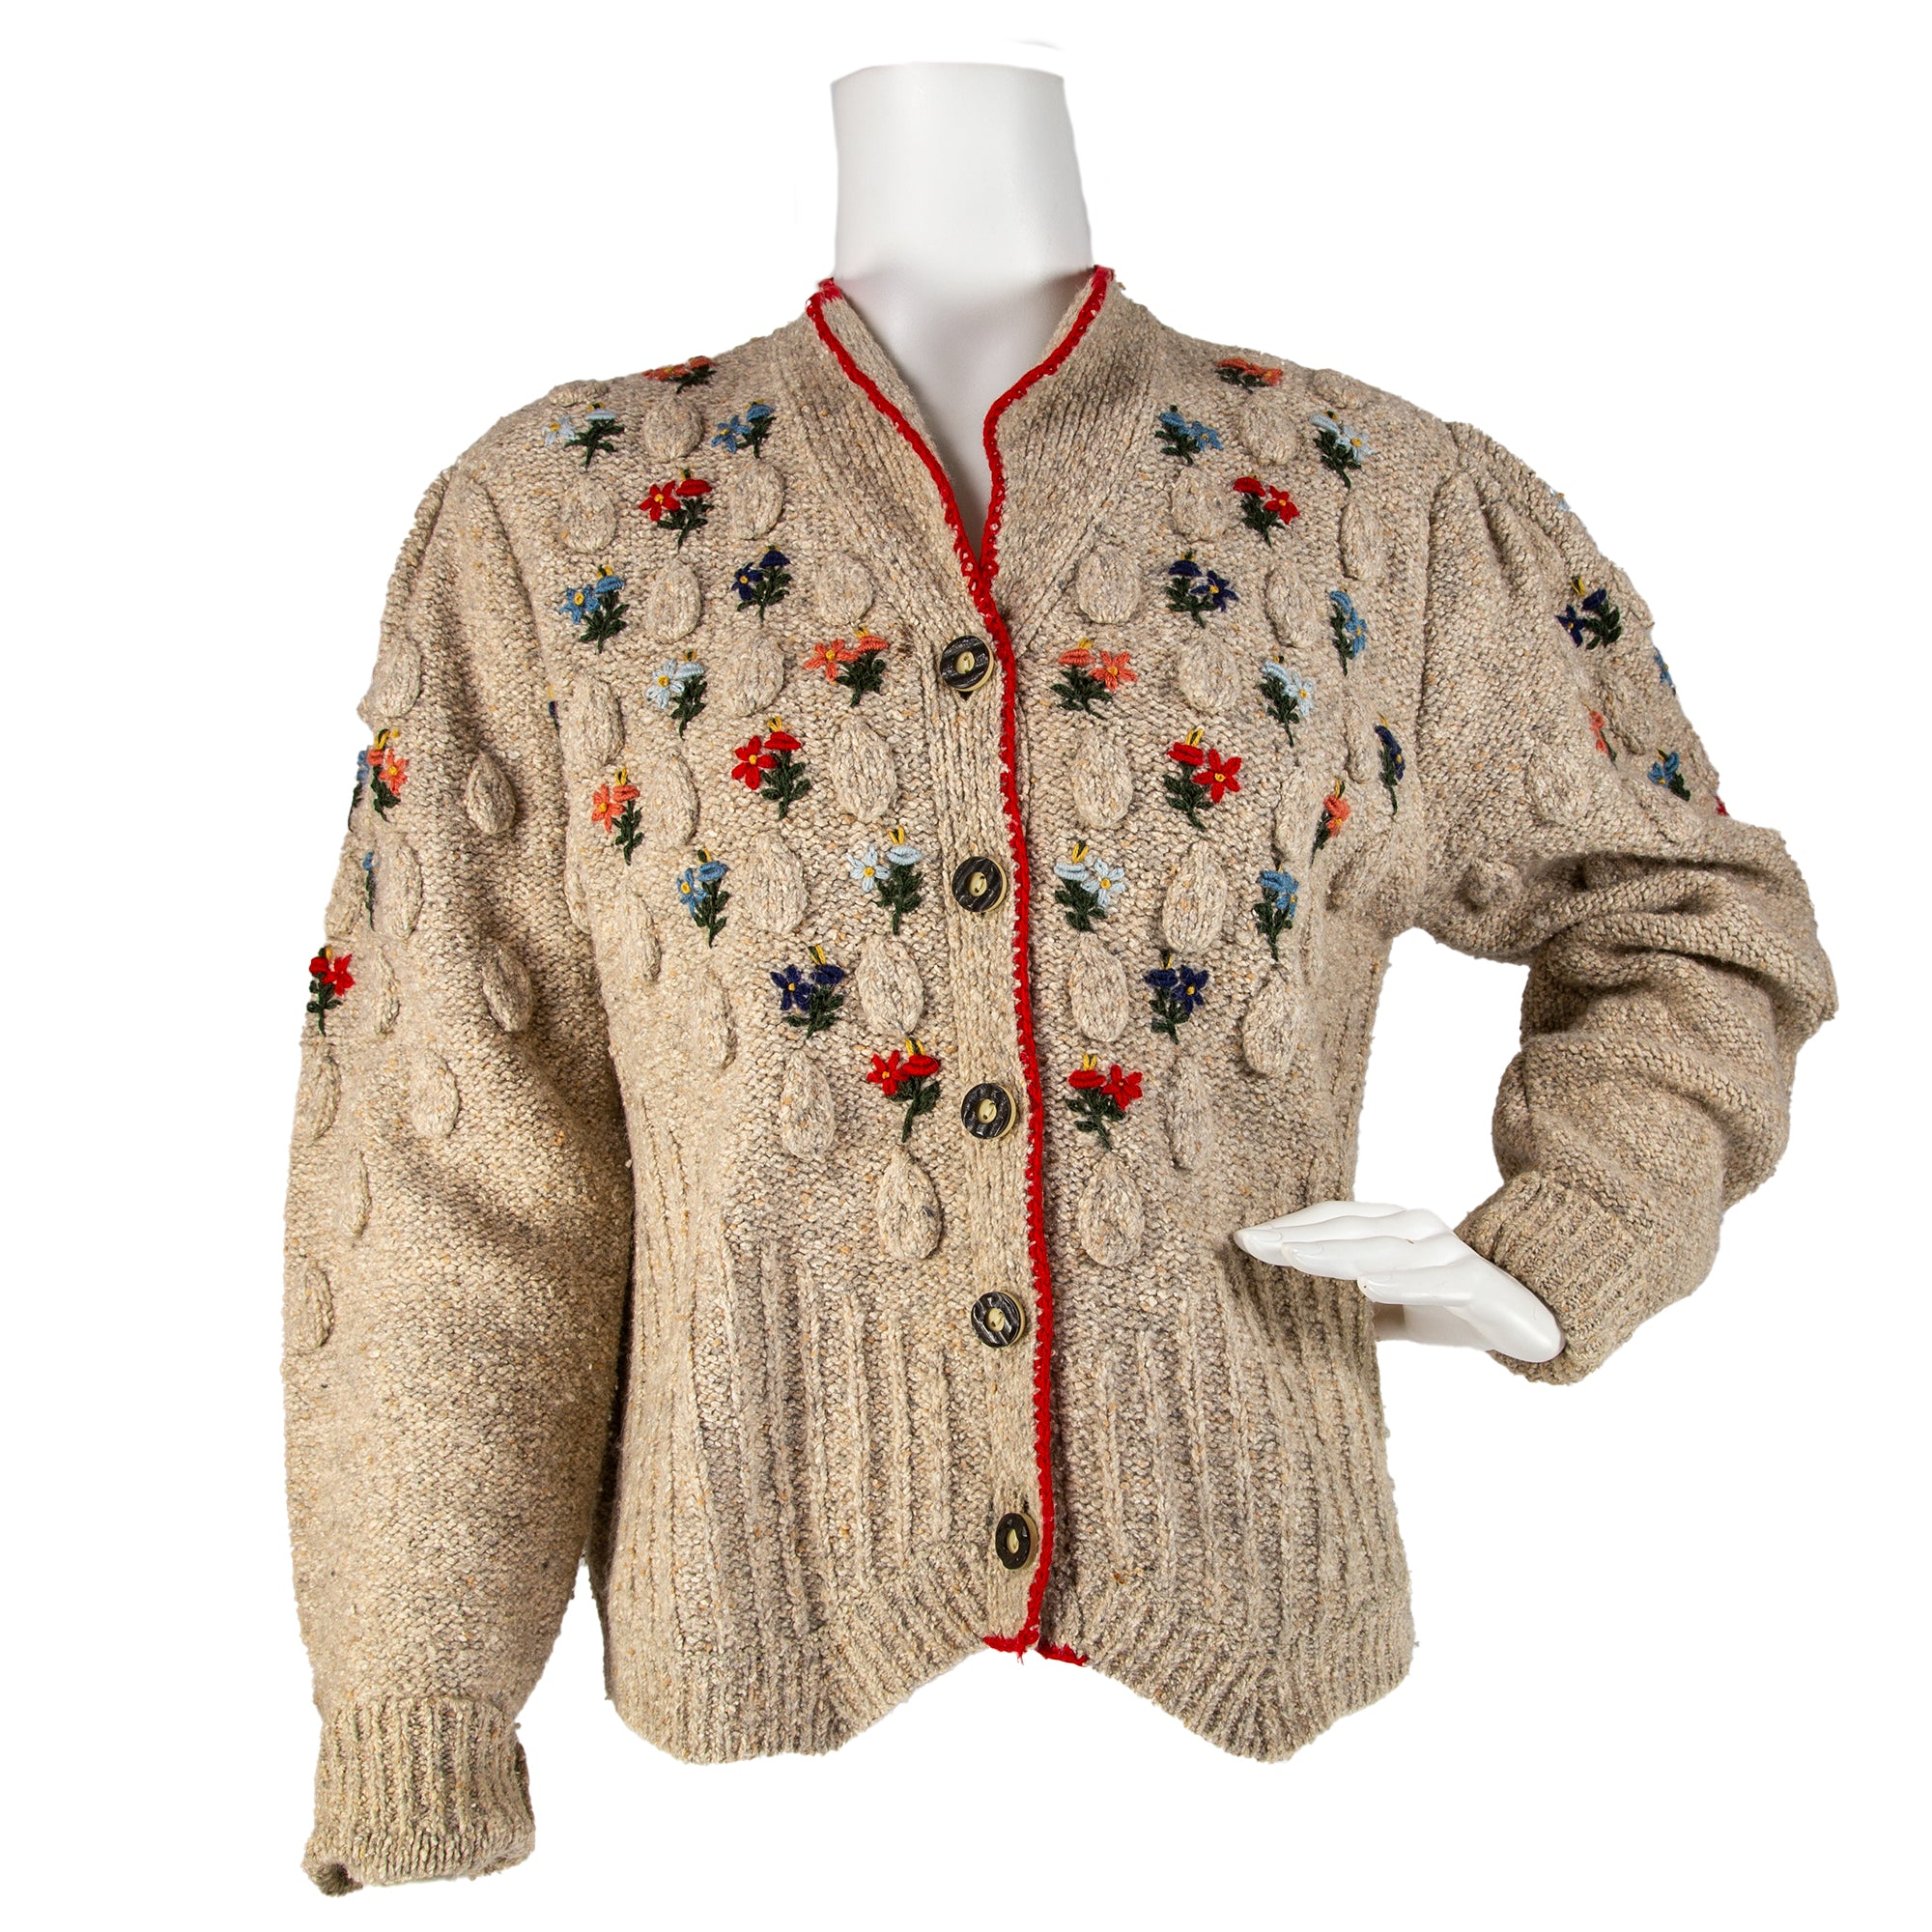 80s Does 30s Embroidered Sweater